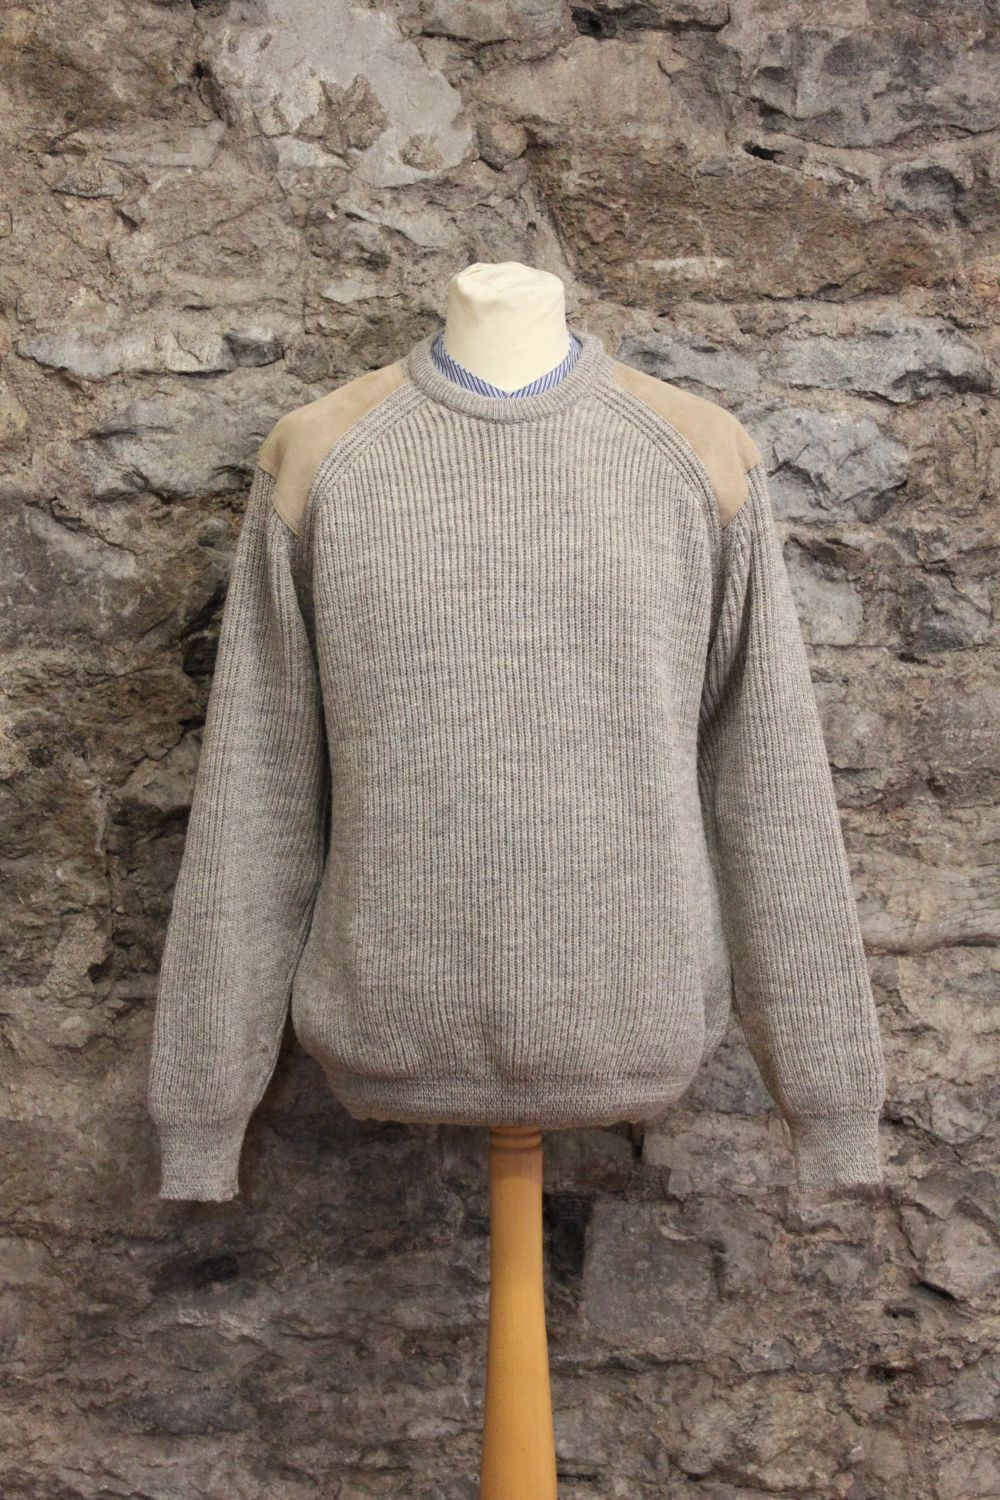 Aran islands knitwear for Aran crafts fisherman sweater